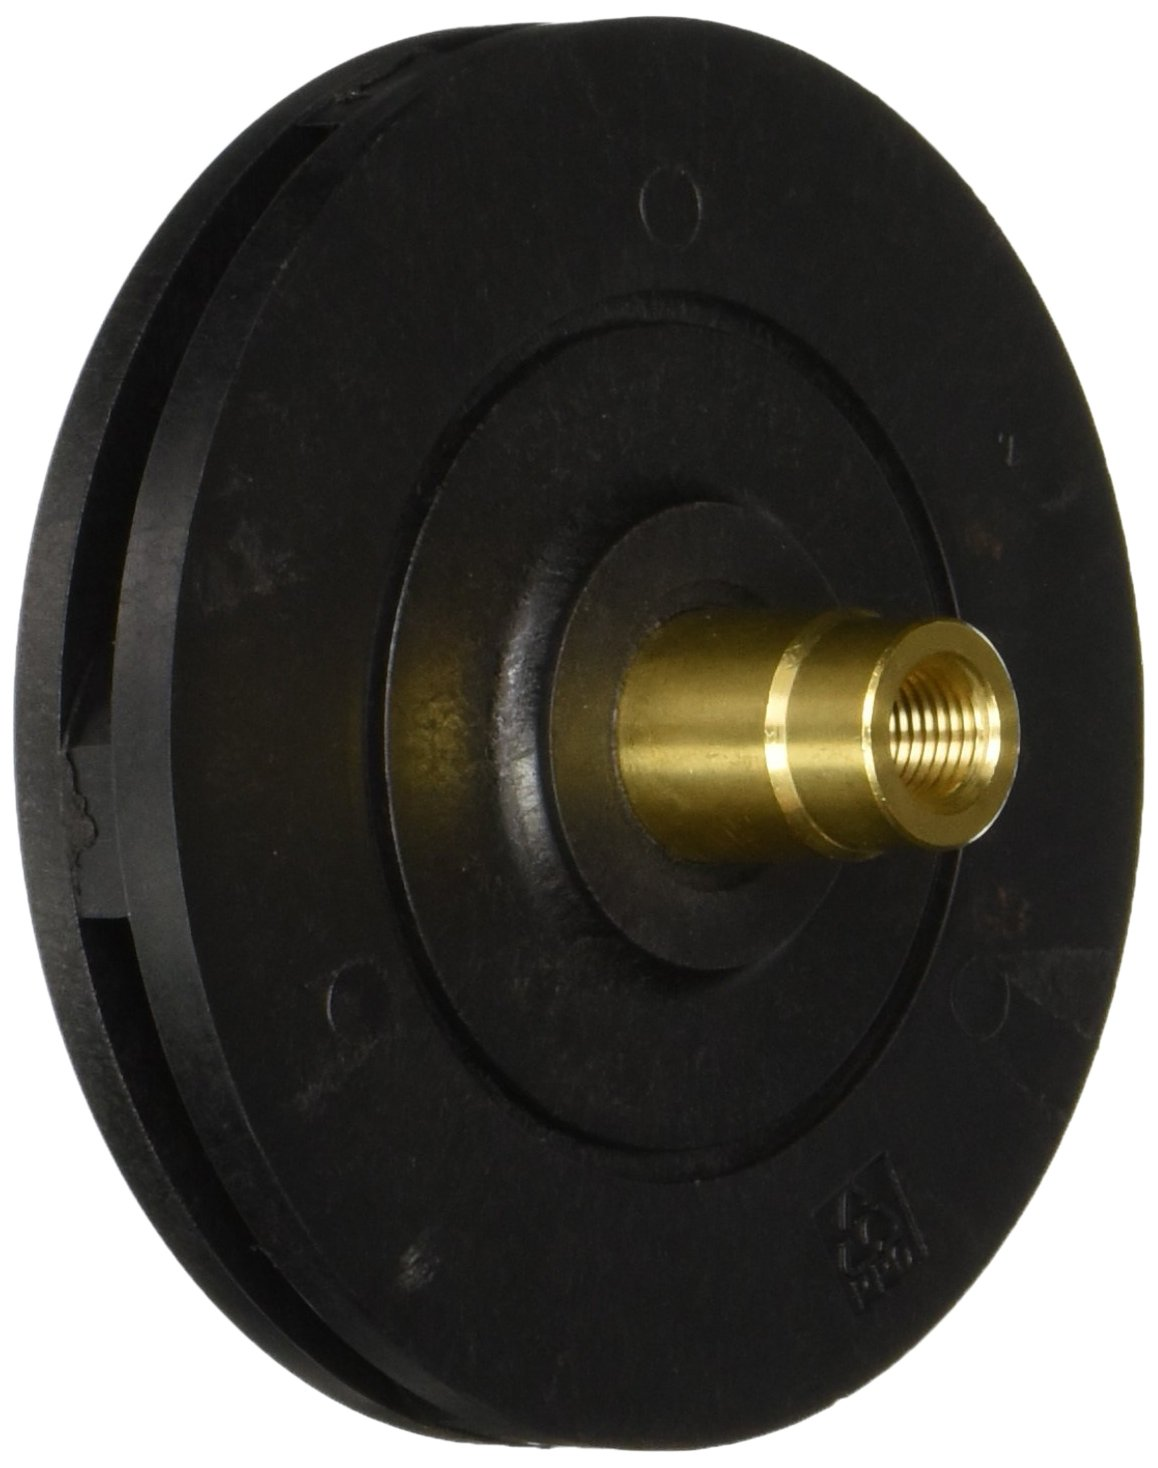 Hayward SPX2607C Impeller Replacement for Select Pumps